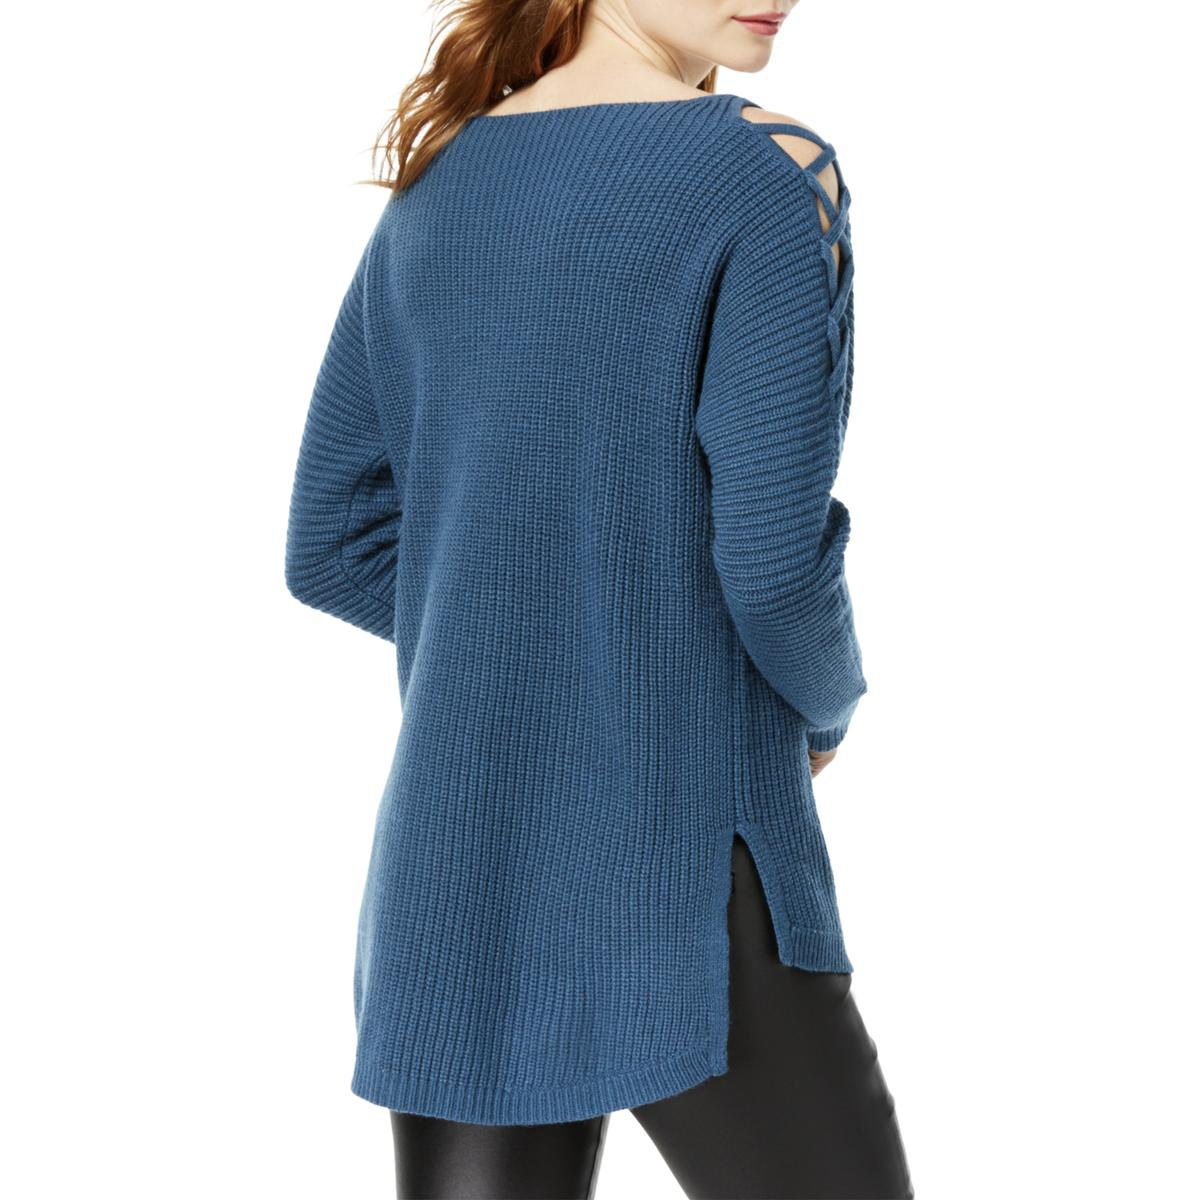 2aba5e08a9154a Bar III Womens Blue Wool Blend Cold-shoulder Pullover Sweater Top XS ...